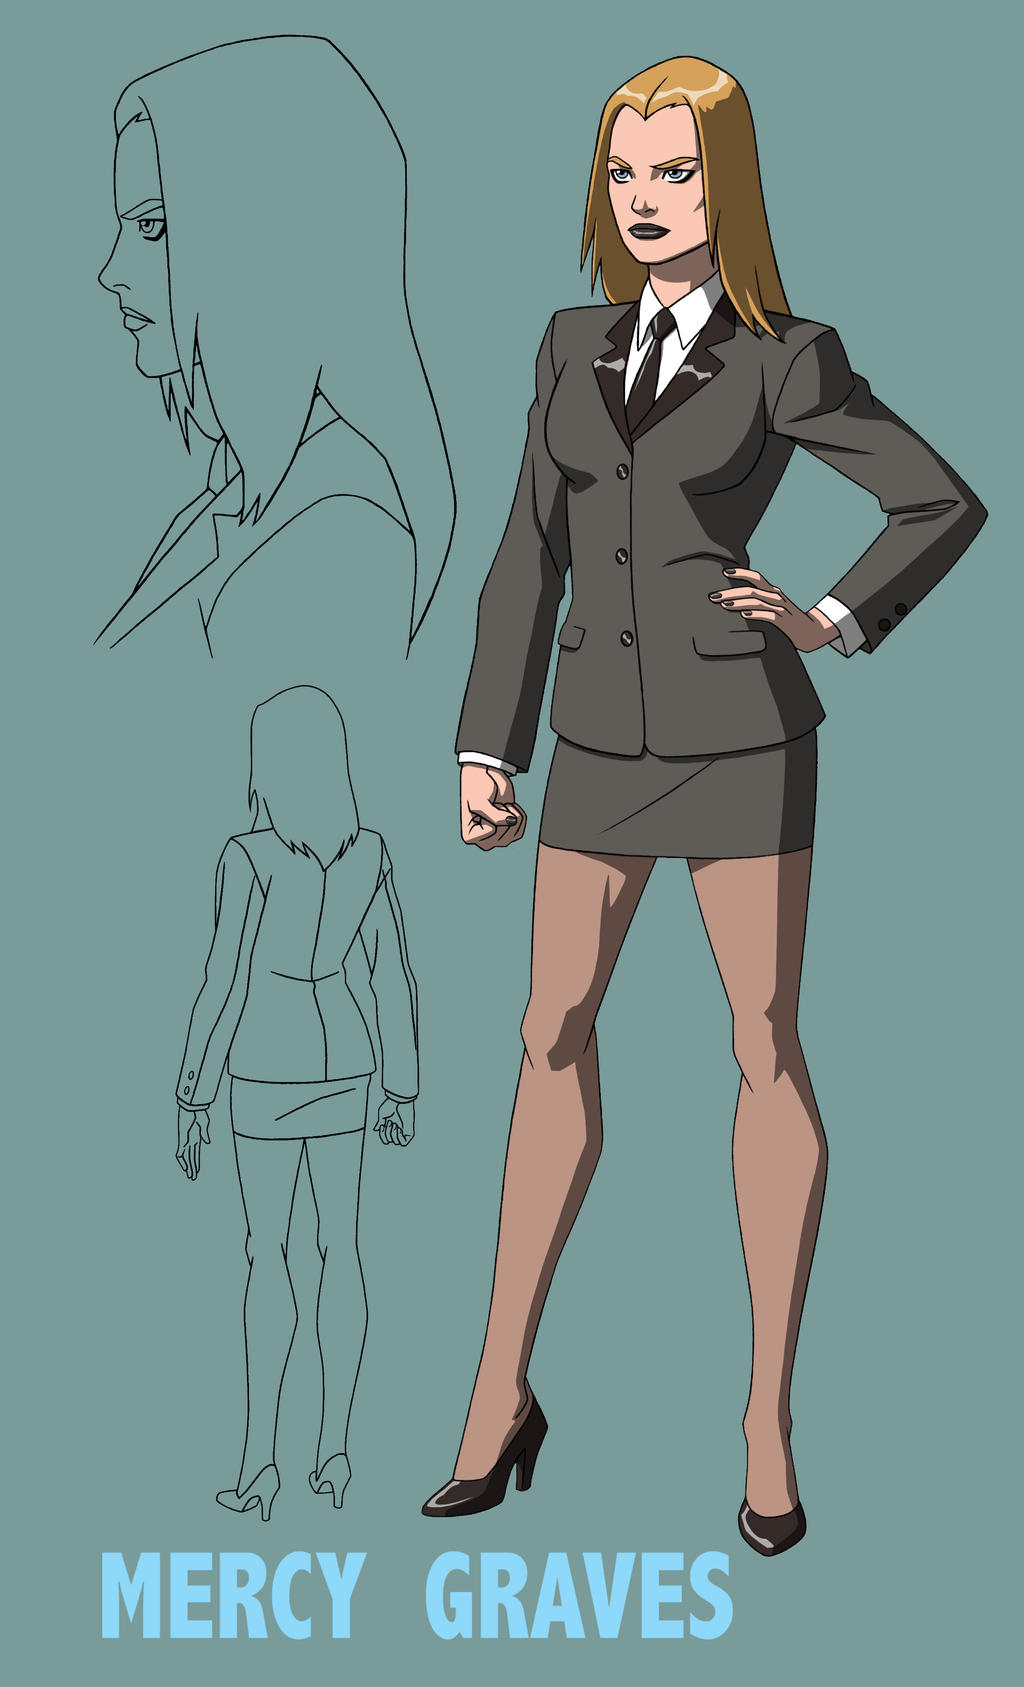 YOUNG JUSTICE: MERCY GRAVES